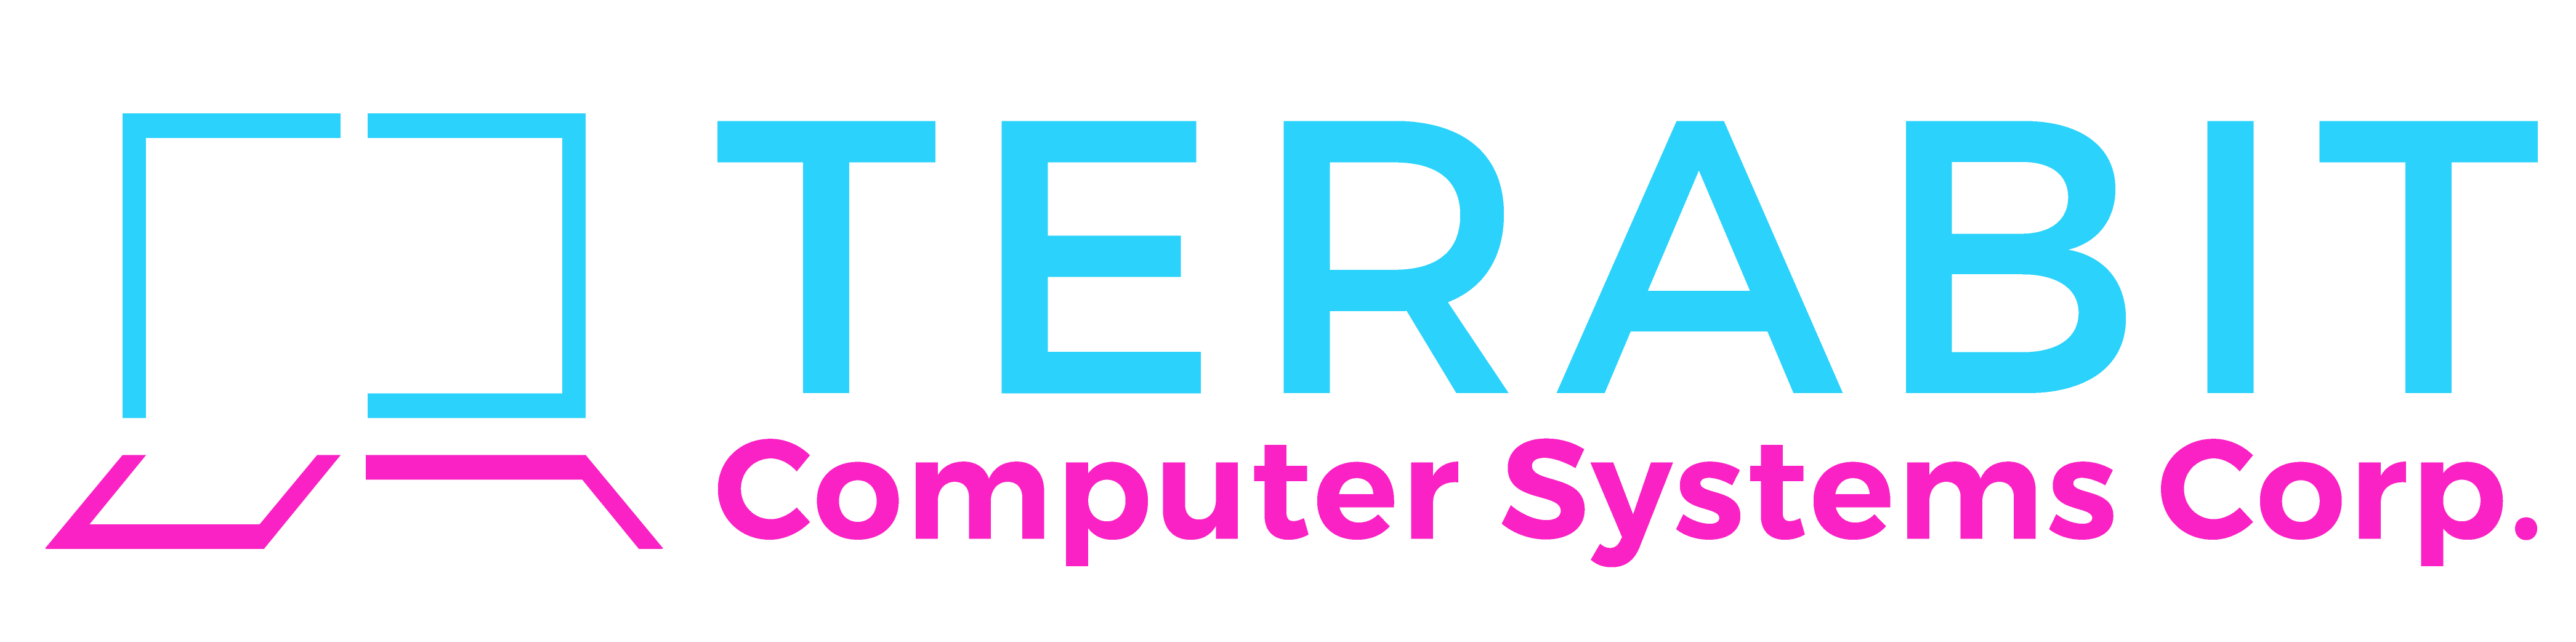 Terabit Computer Systems Corp